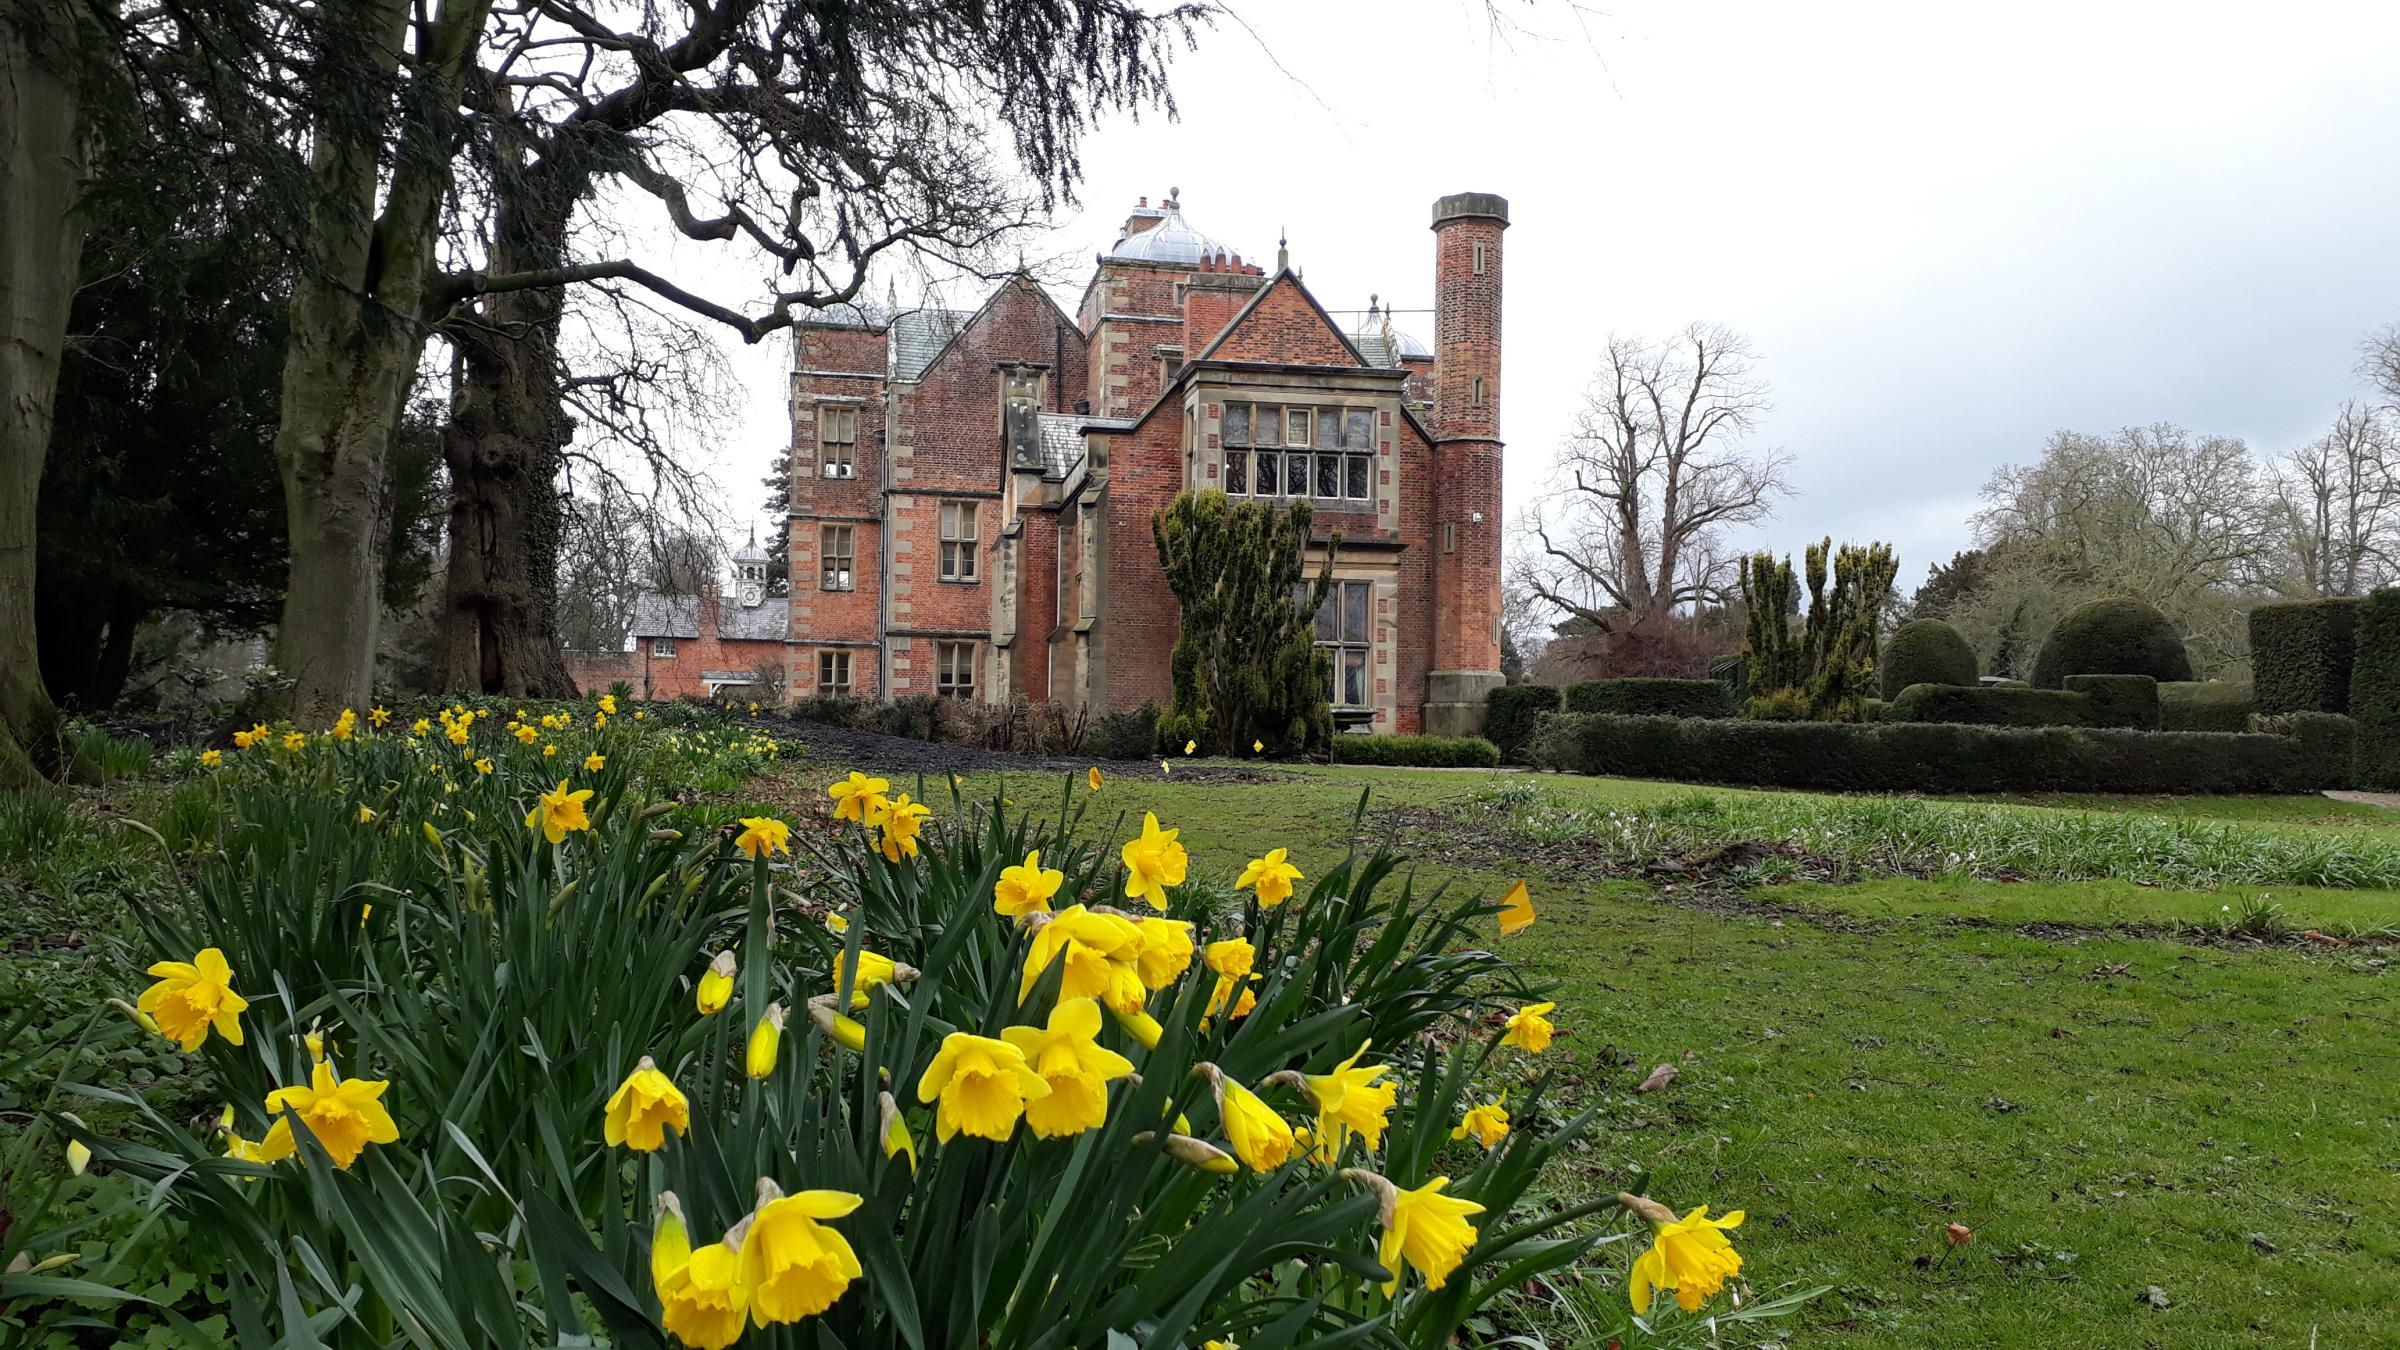 READER'S VIEW: Jamie Mash from Northallerton made his way to Kiplin Hall on an early spring day to capture this shot of daffodils in bloom within the grounds of the great house.